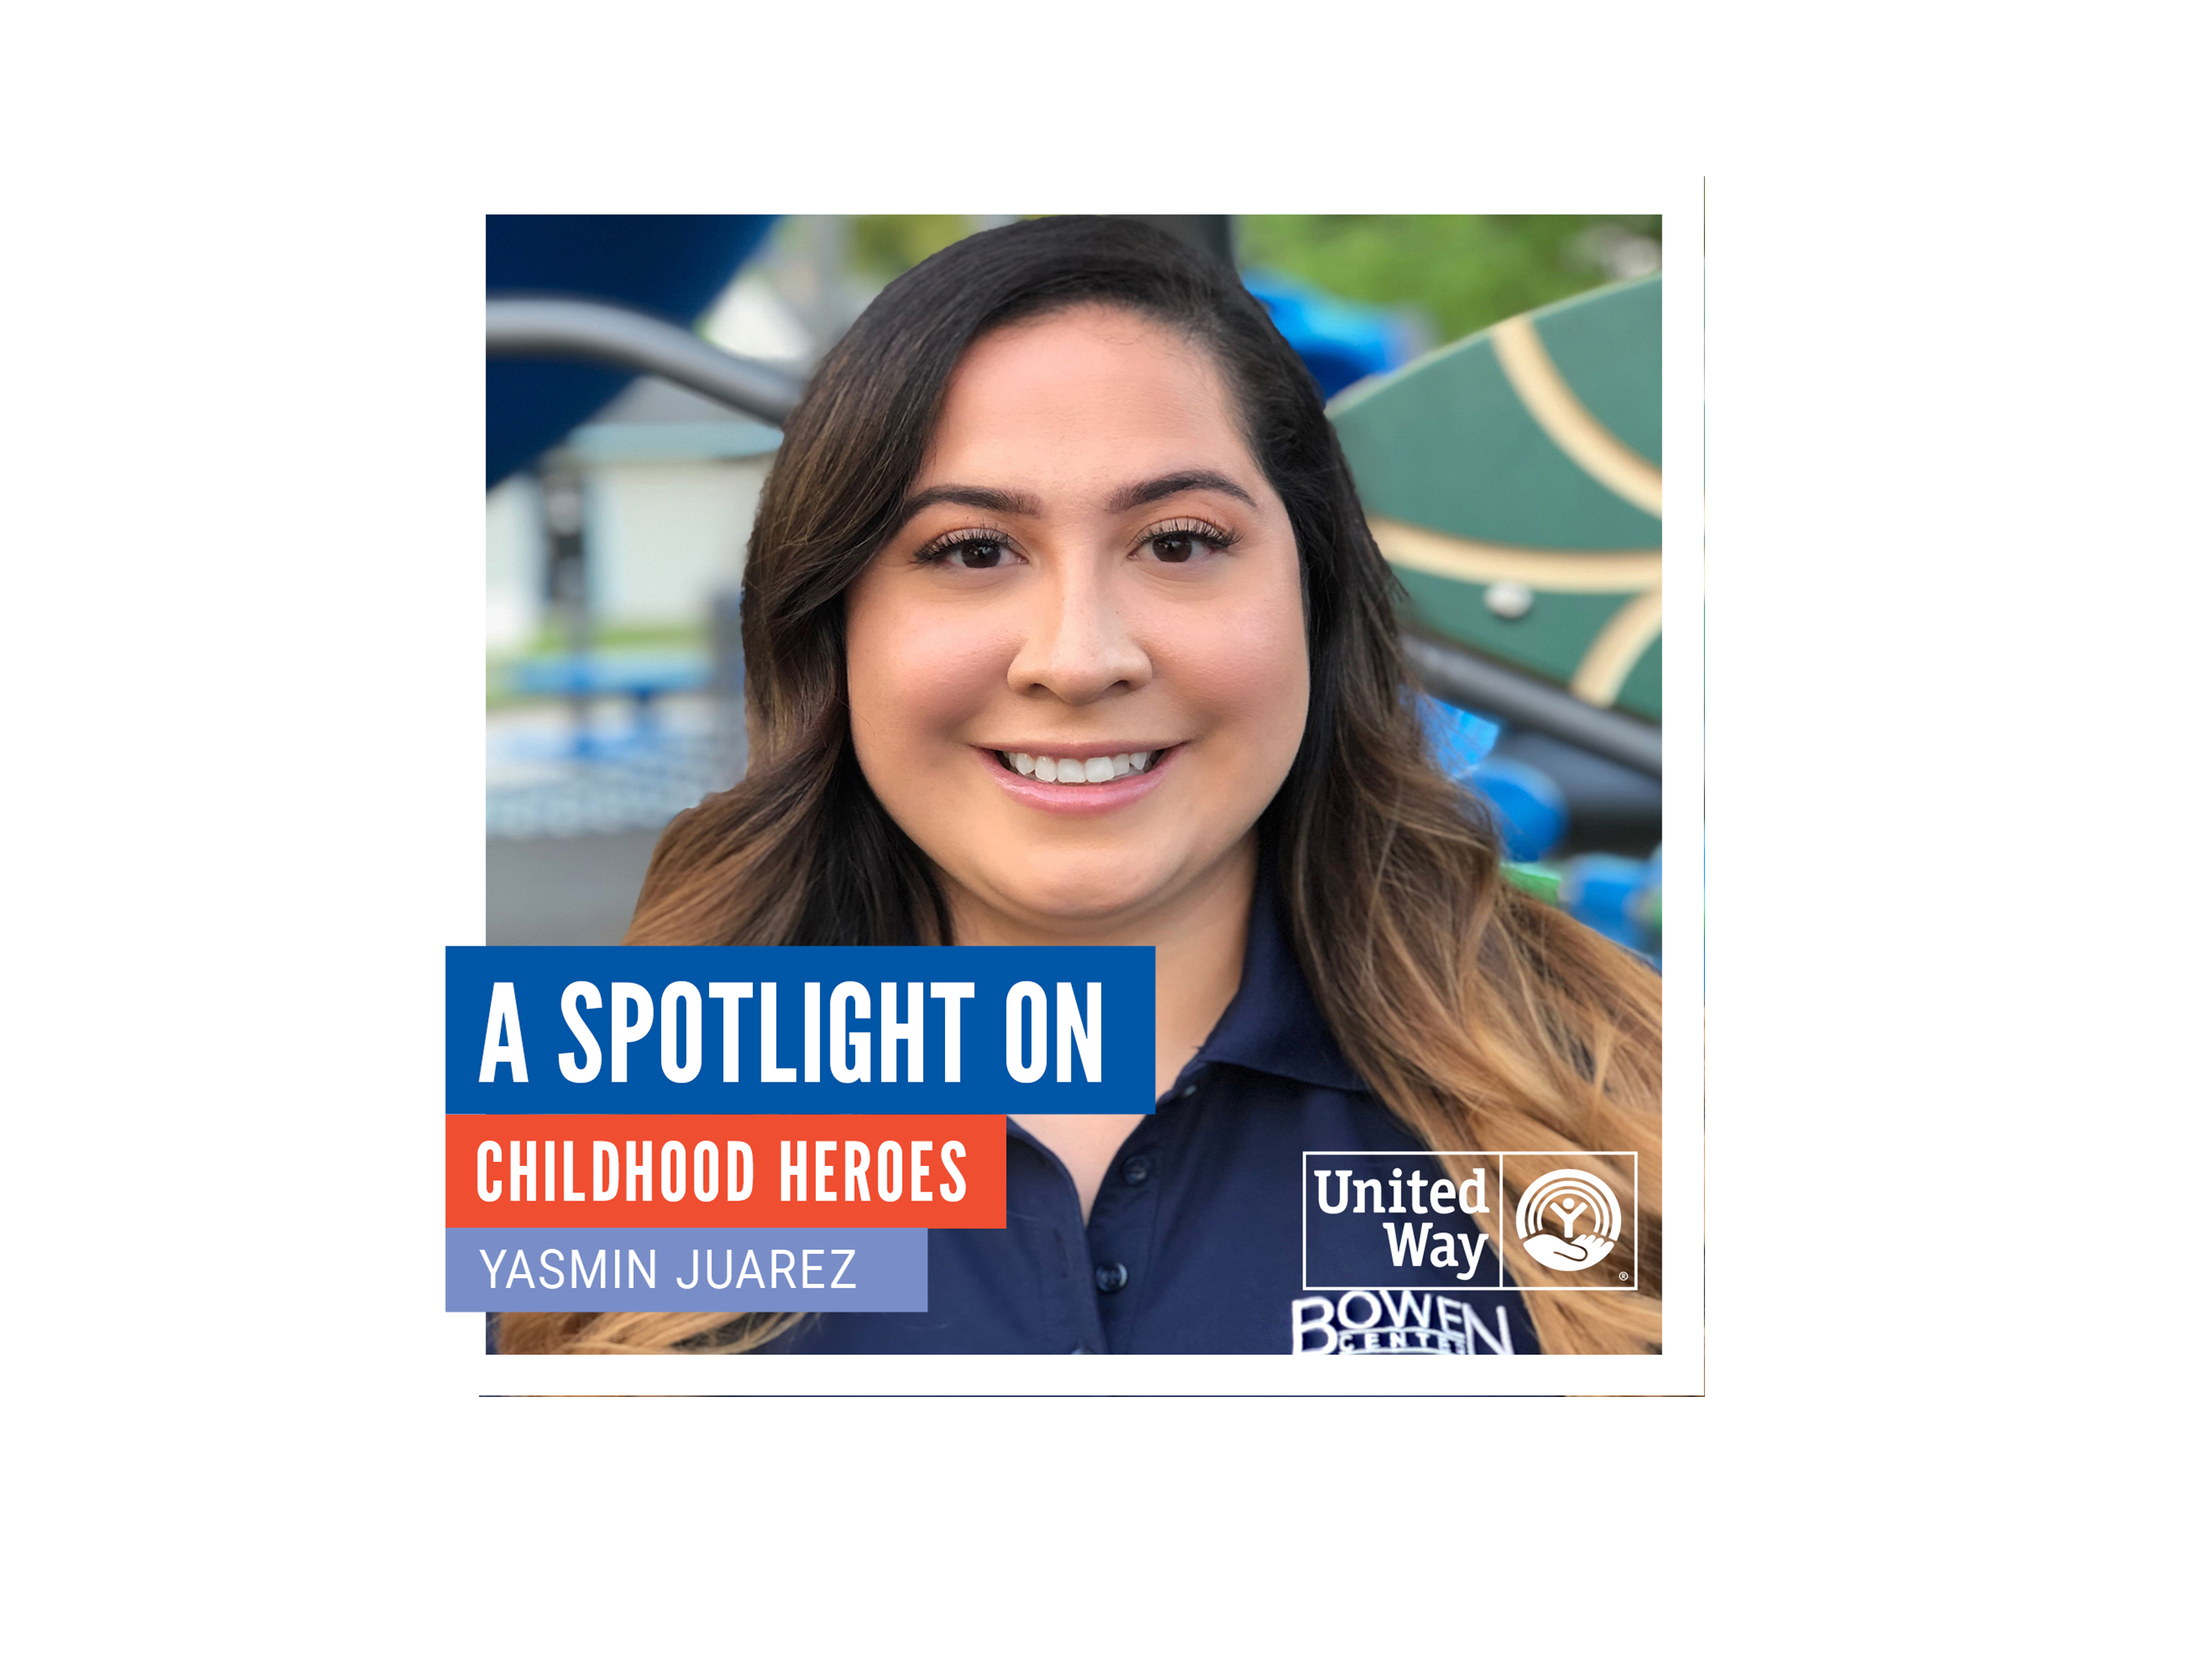 United Way Spotlight